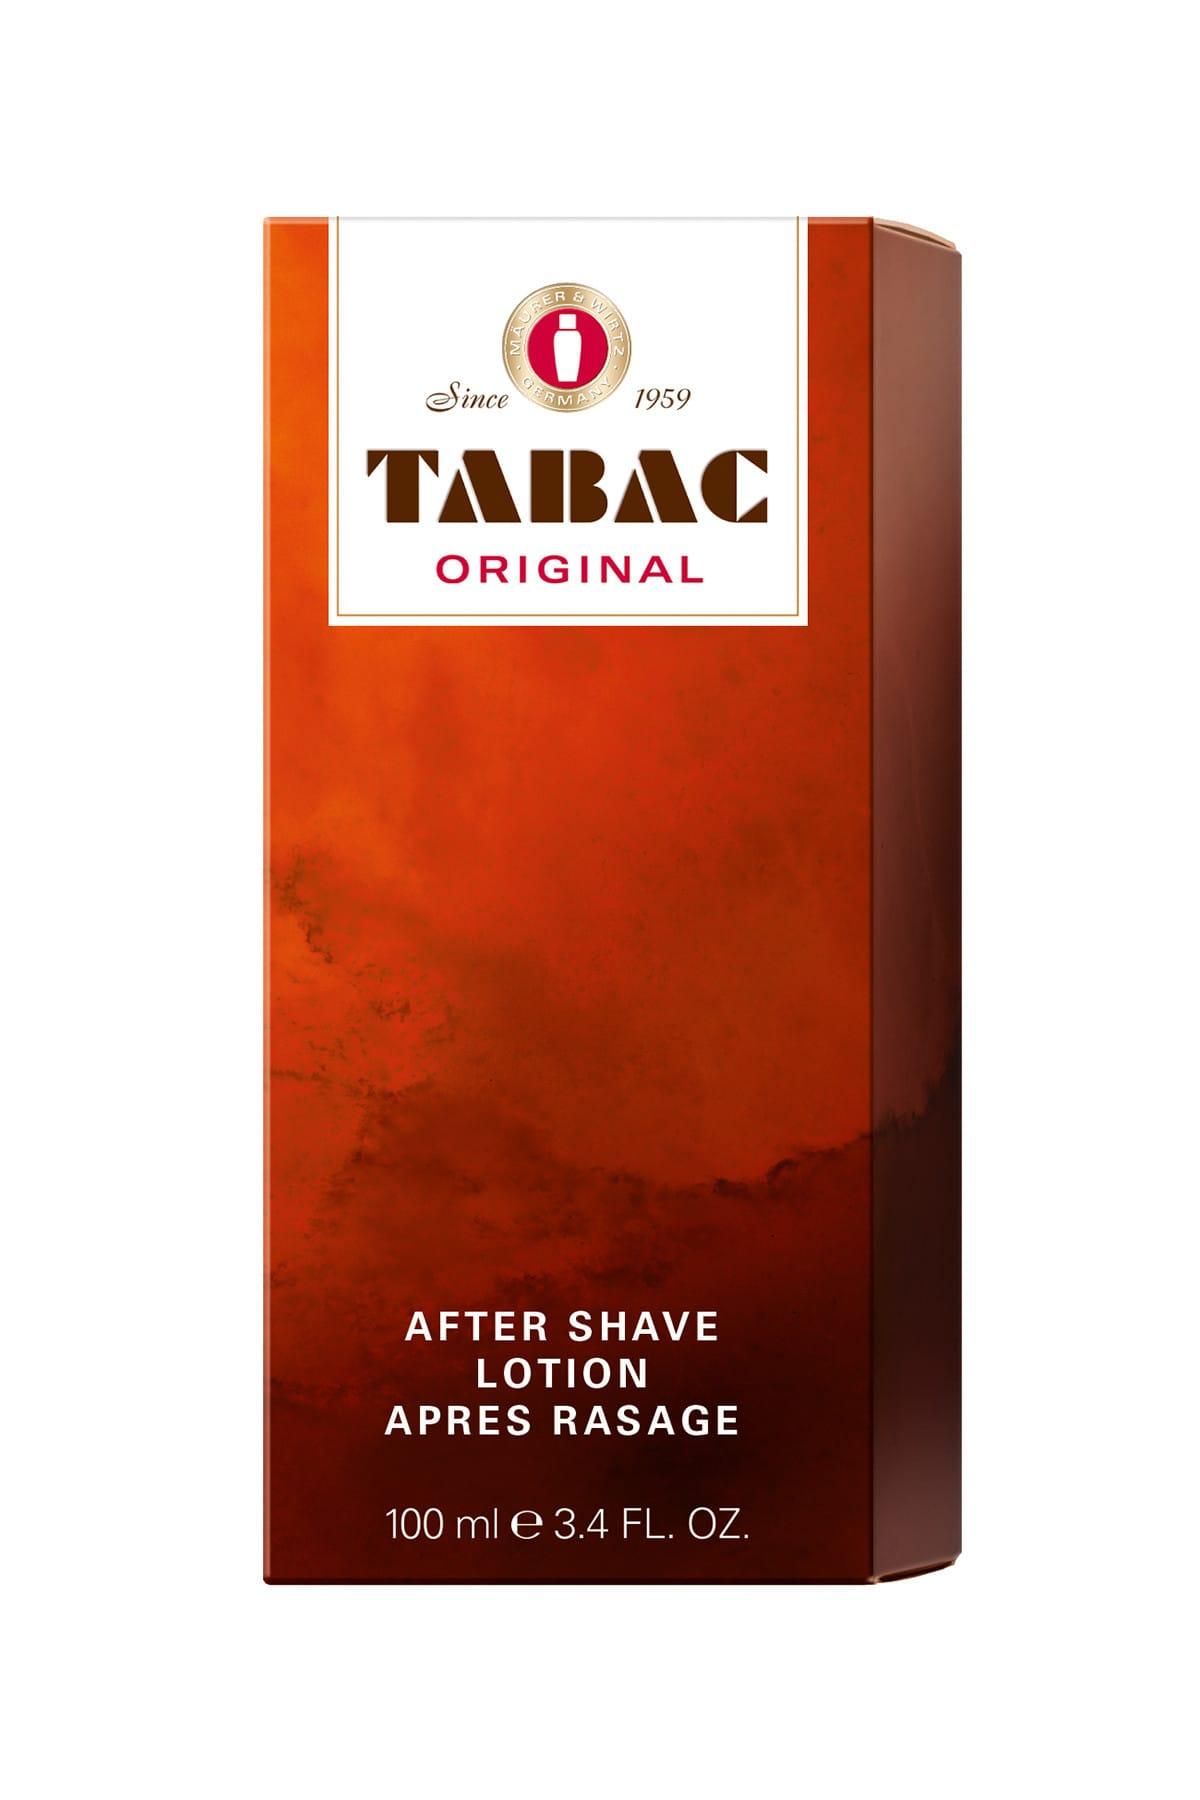 Tabac Tabac Original After Shave Lotion 100ml